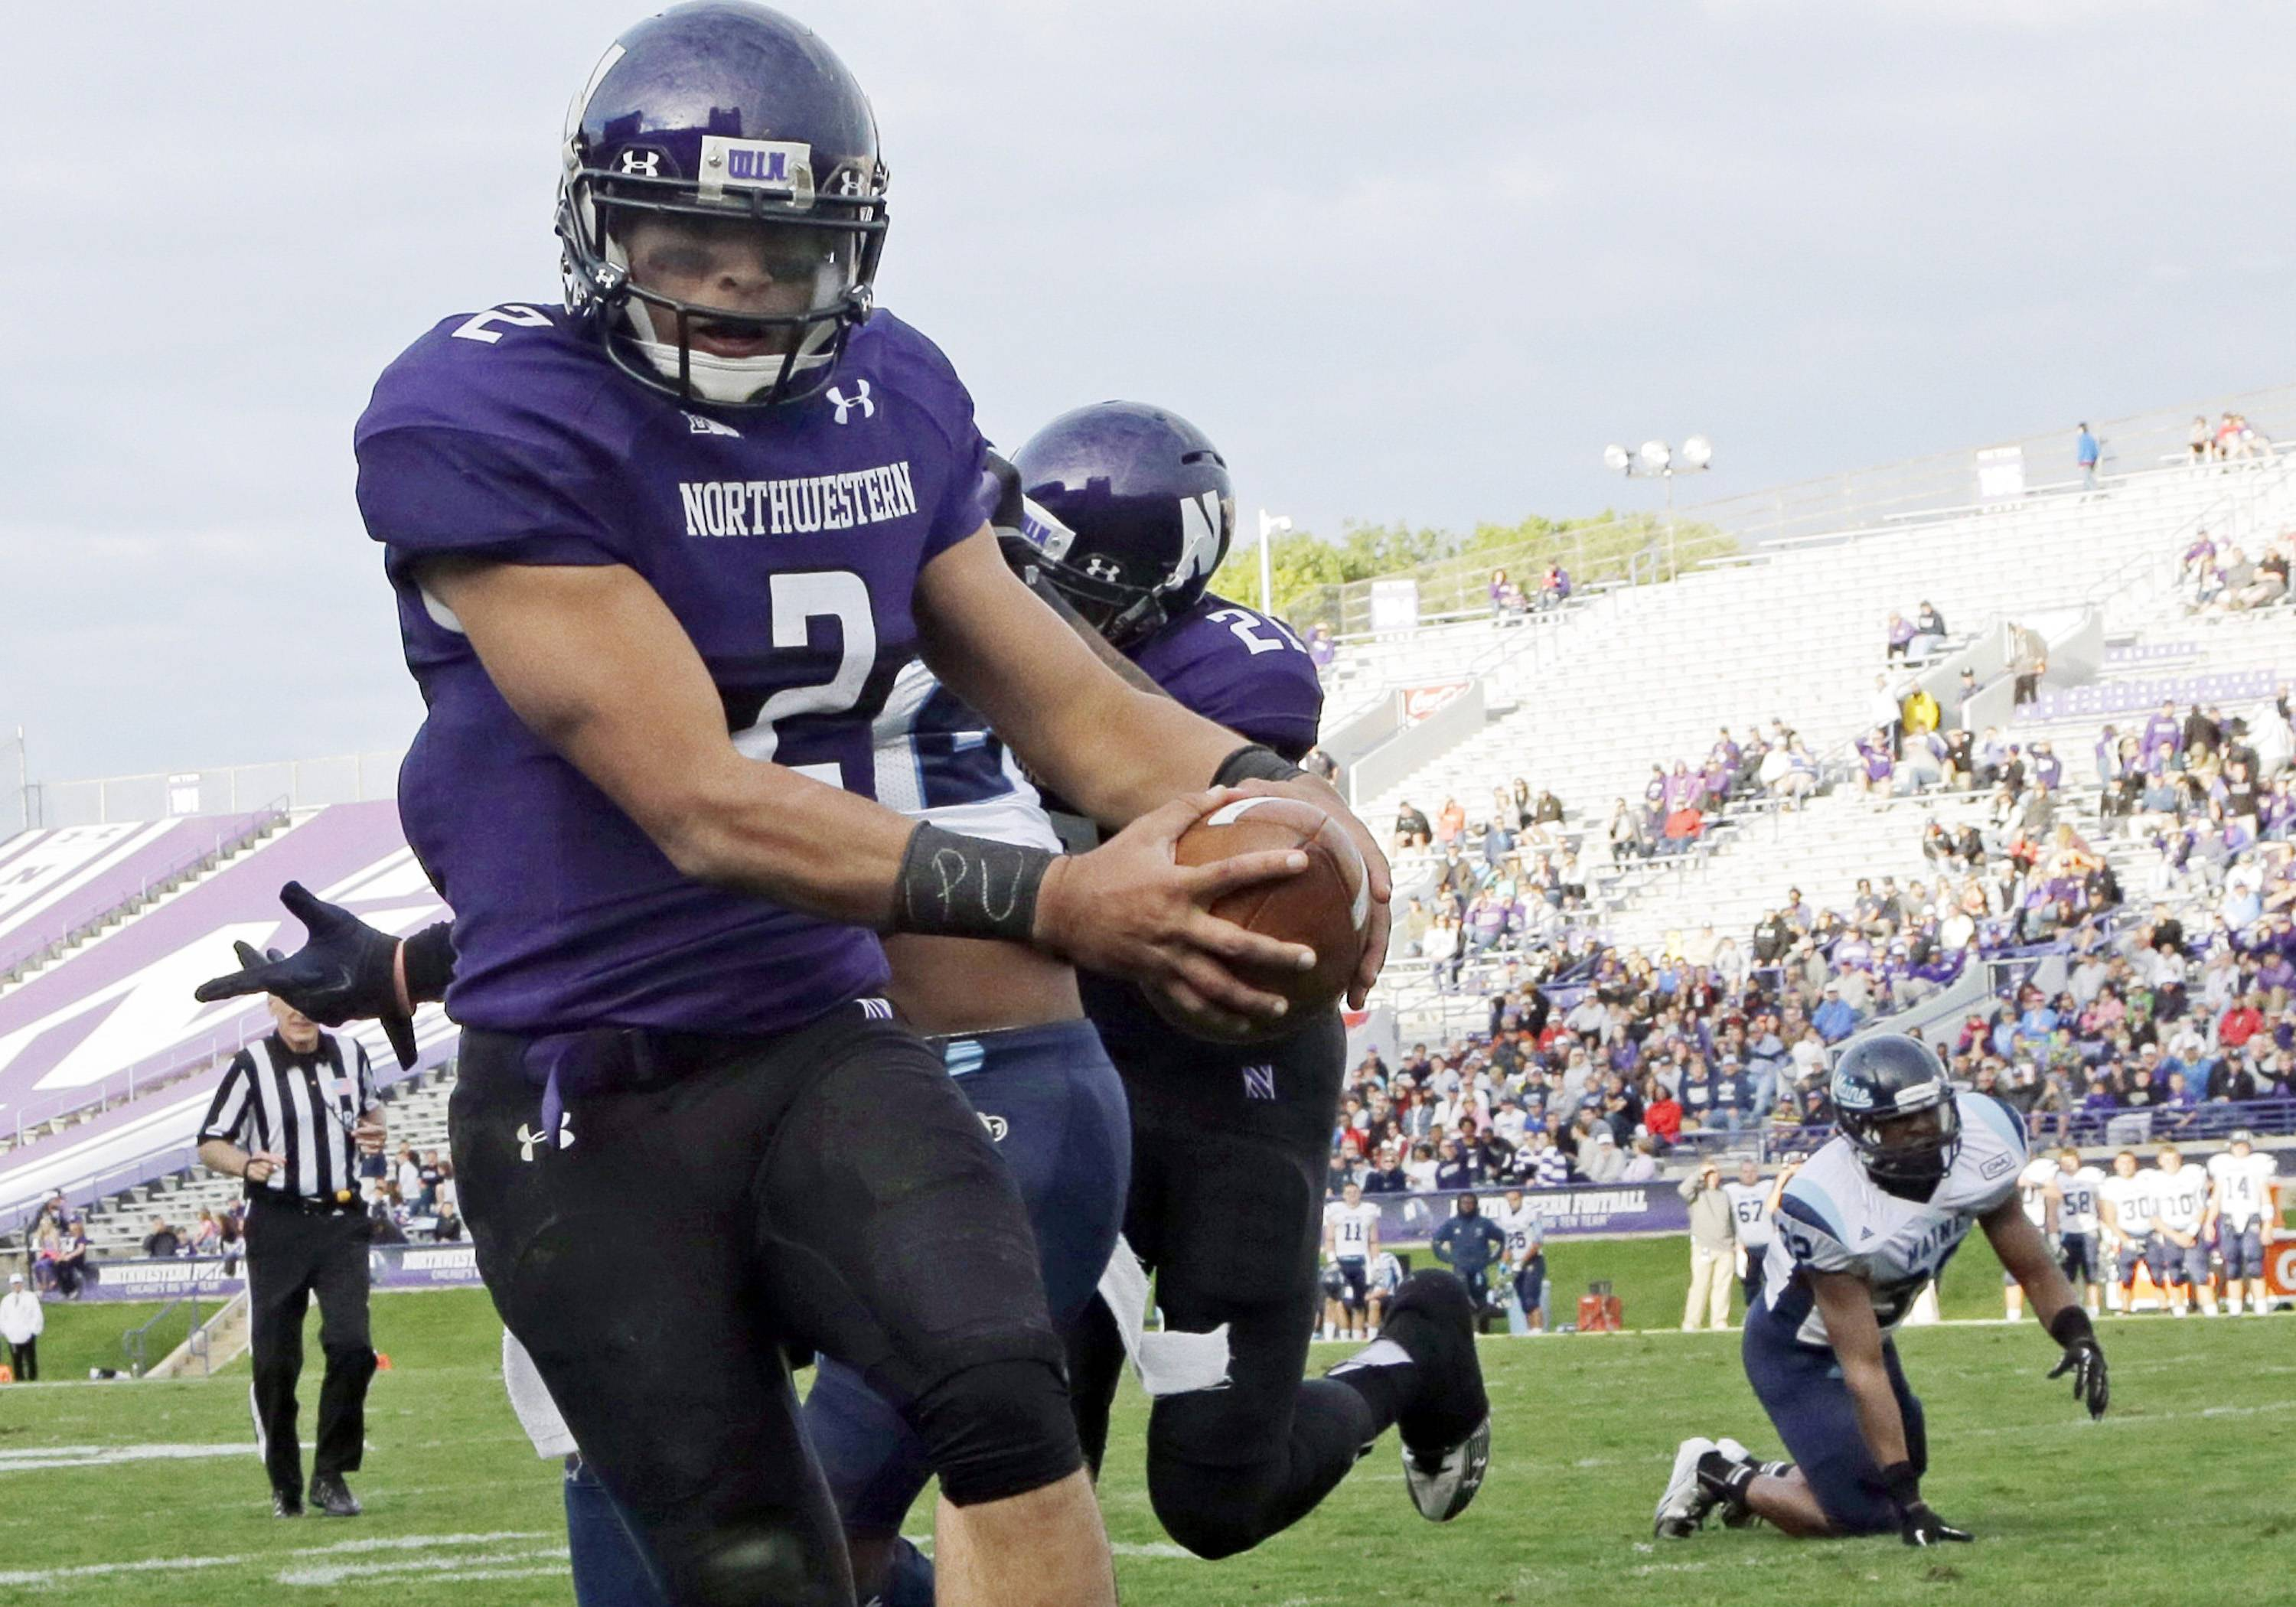 "Northwestern quarterback Kain Colter (2), wears APU for ""All Players United"" on wrist tape as he scores a touchdown during a 2013 NCAA college football game against Maine. While he has led an effort to unionize college athletes, athletes across the world are organized in a variety of ways."